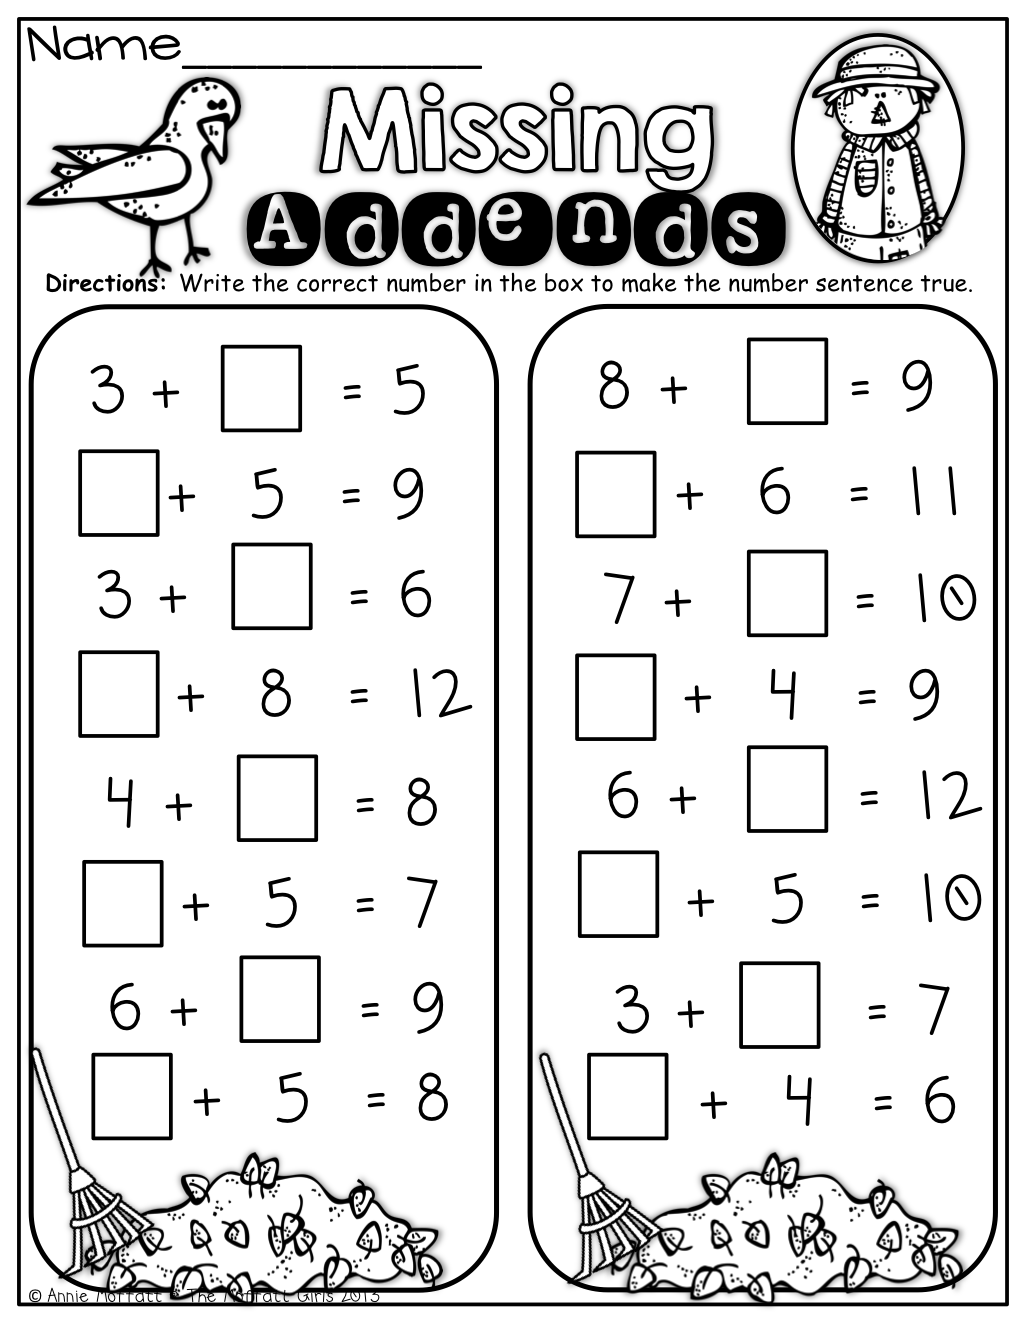 Missing Addends Fall Math First Grade Math 1st Grade Math Worksheets